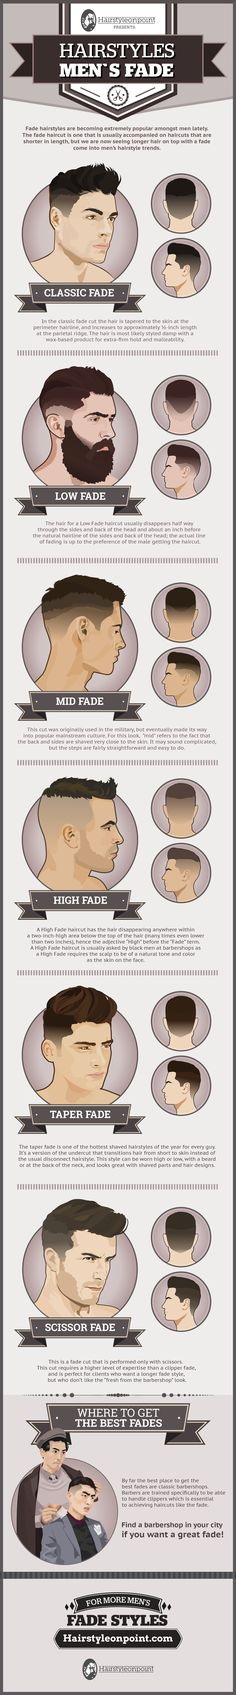 This is the trendiest haircut for guys right now #trends #men #hairstyle